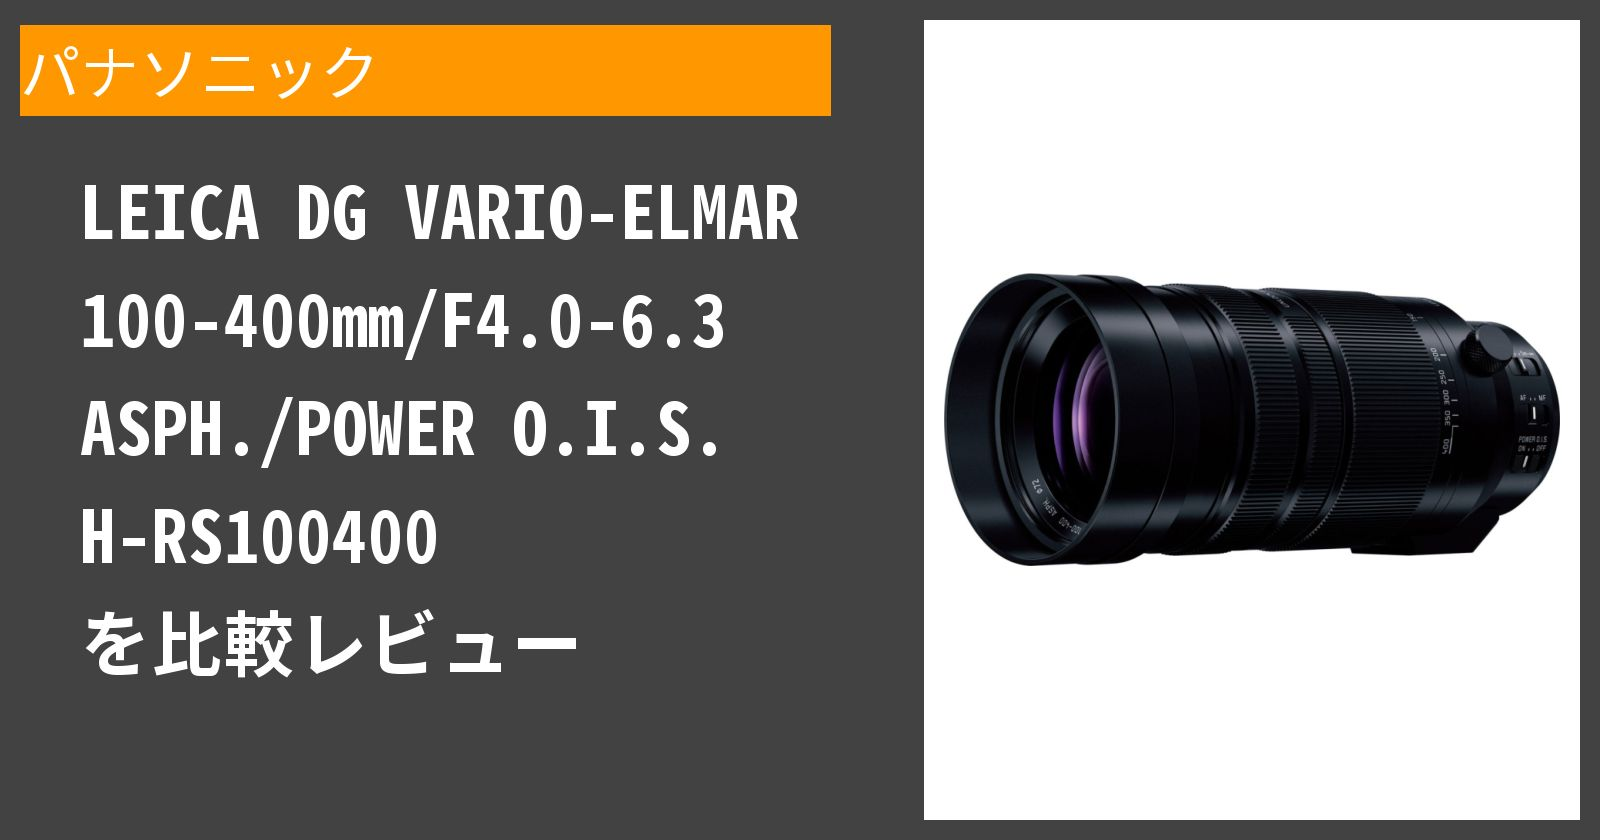 LEICA DG VARIO-ELMAR 100-400mm/F4.0-6.3 ASPH./POWER O.I.S. H-RS100400を徹底評価